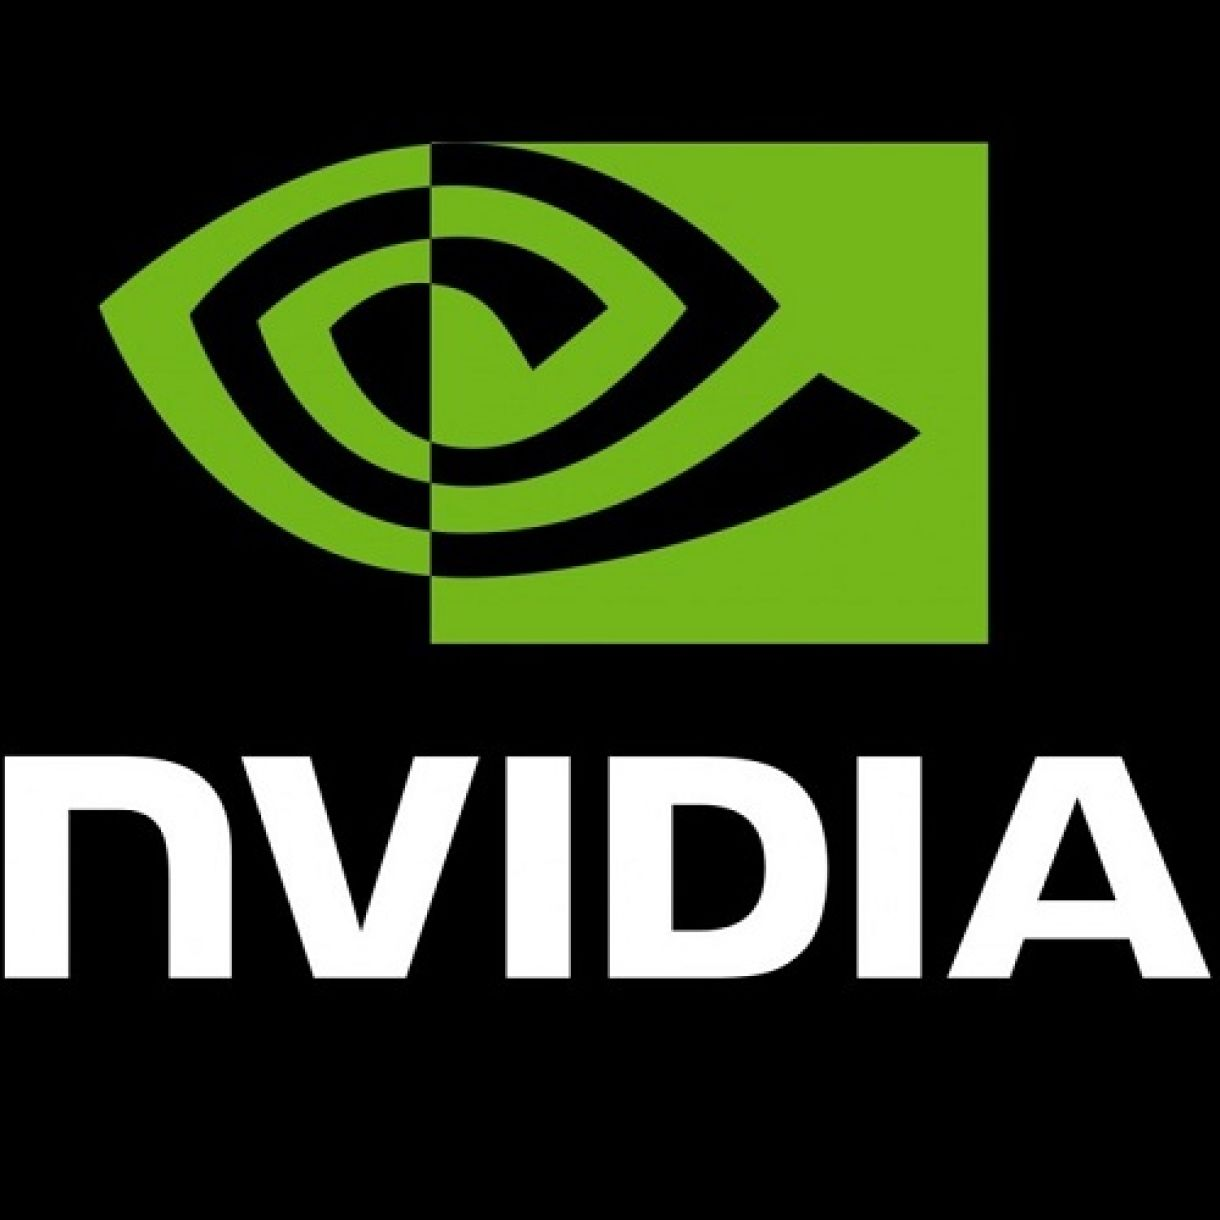 NVIDIA's SDK 3.1 advances Real-Time Game Rendering and Simulation